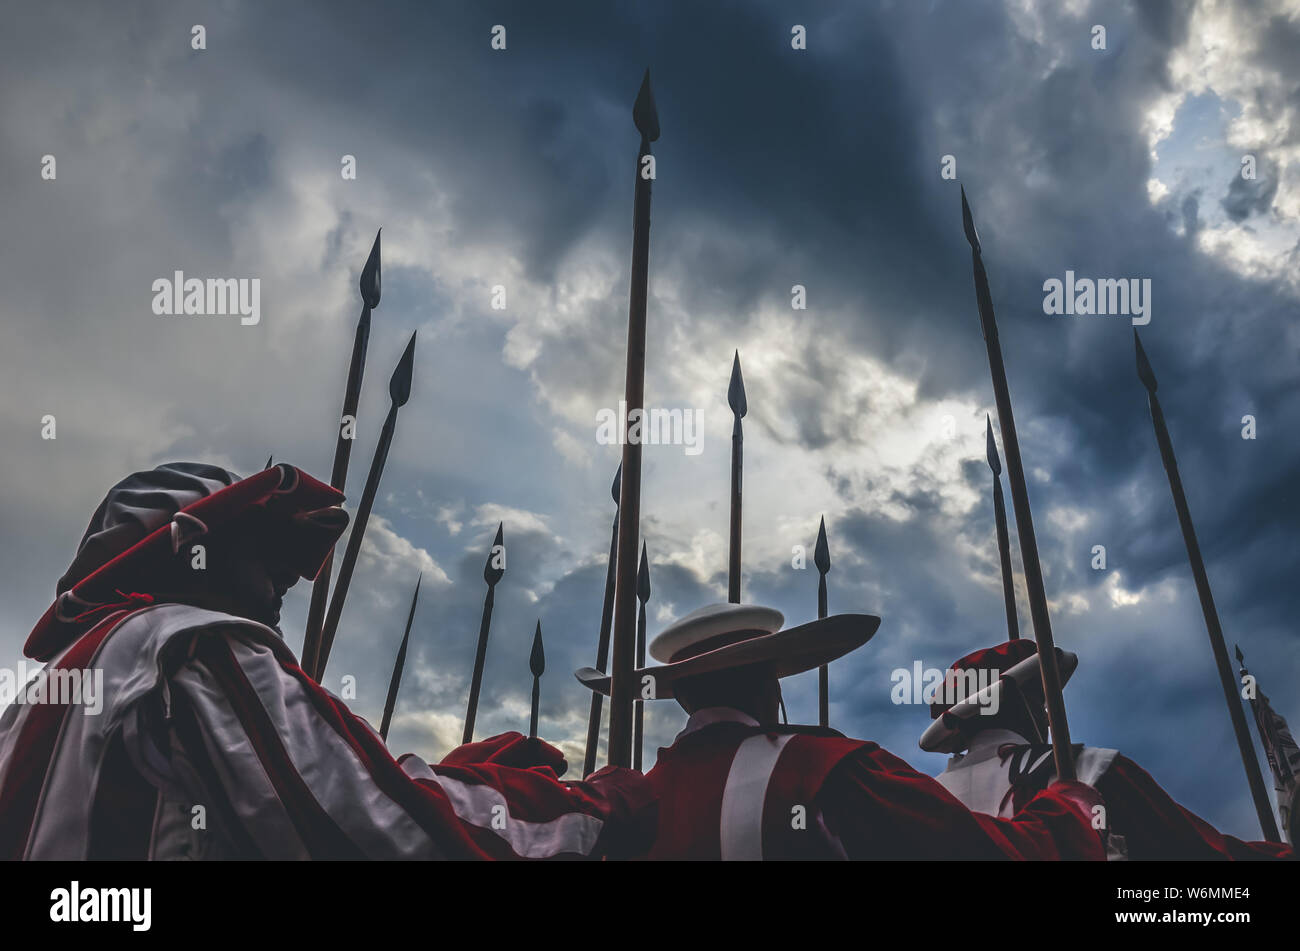 Holding Spear Stock Photos & Holding Spear Stock Images - Alamy